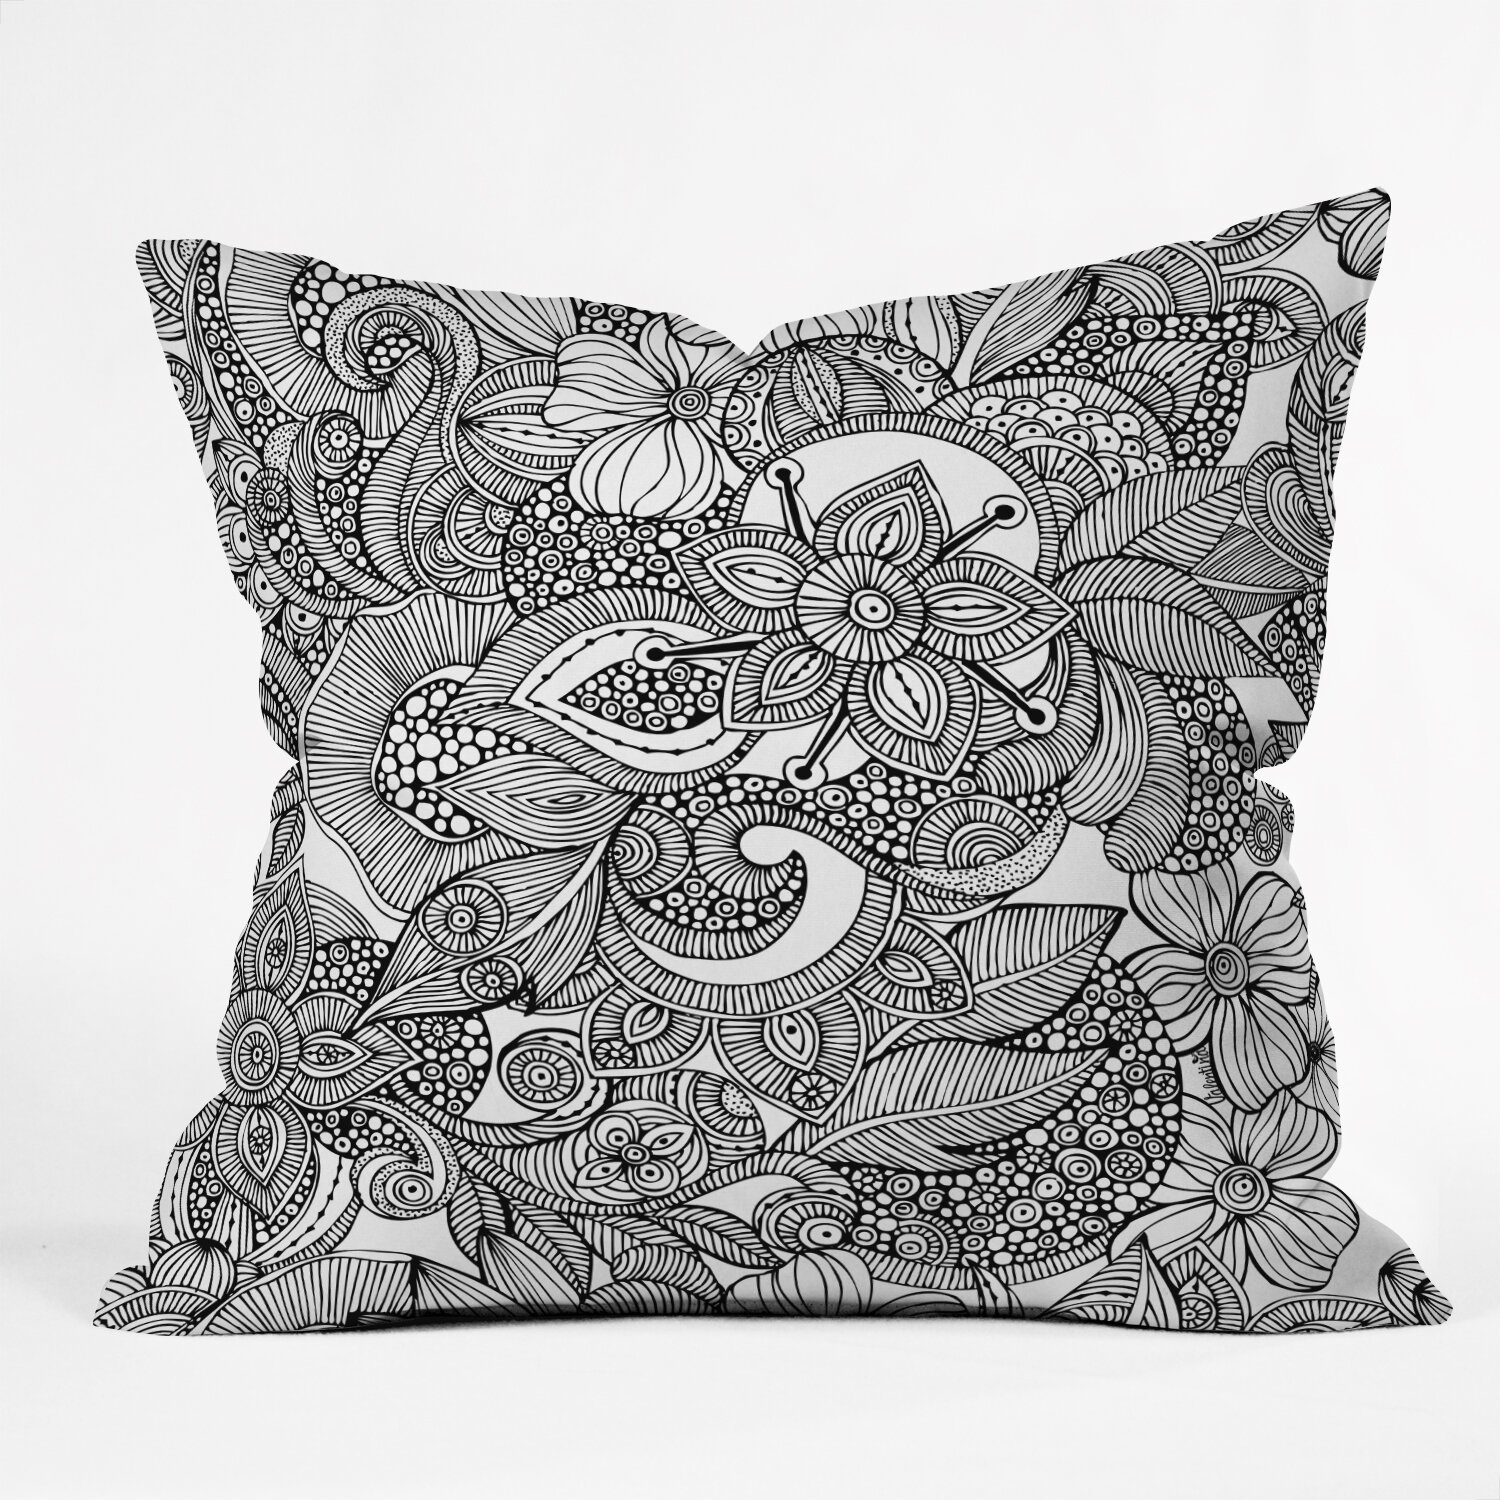 Throw Pillow Doodle : DENY Designs Valentina Ramos Doodles Throw Pillow & Reviews Wayfair